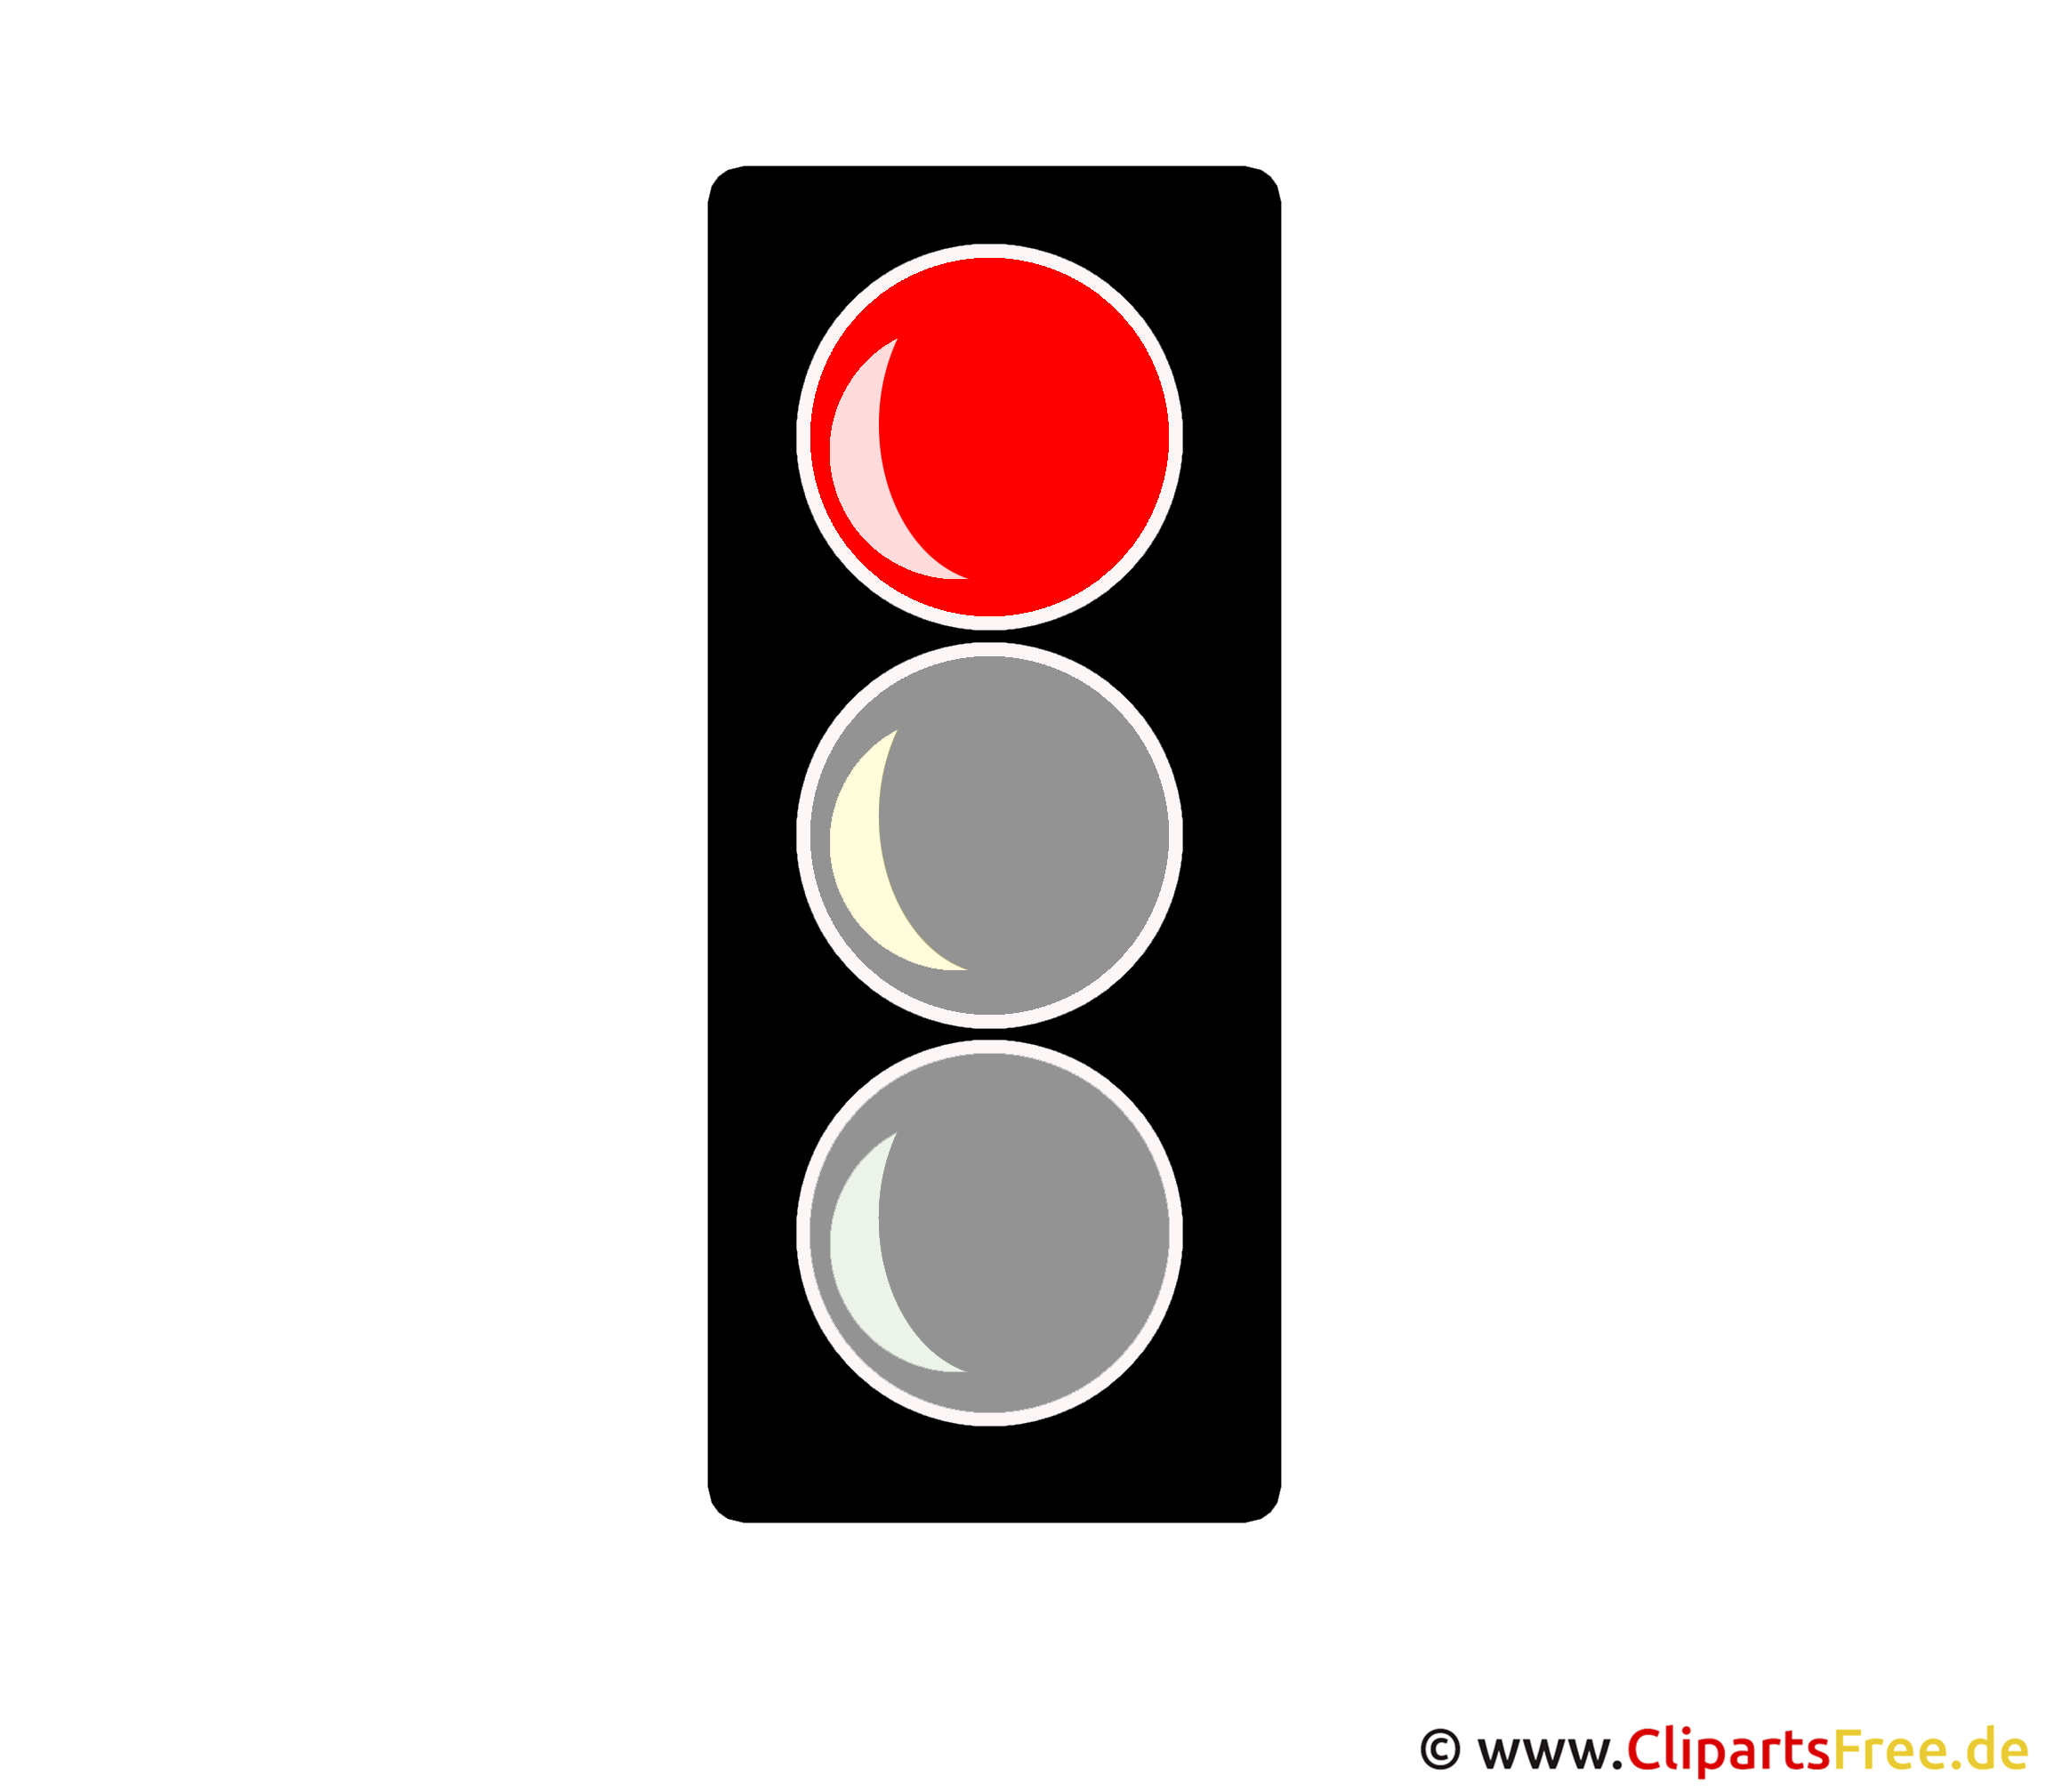 Rote >> Rote Ampel Clipart